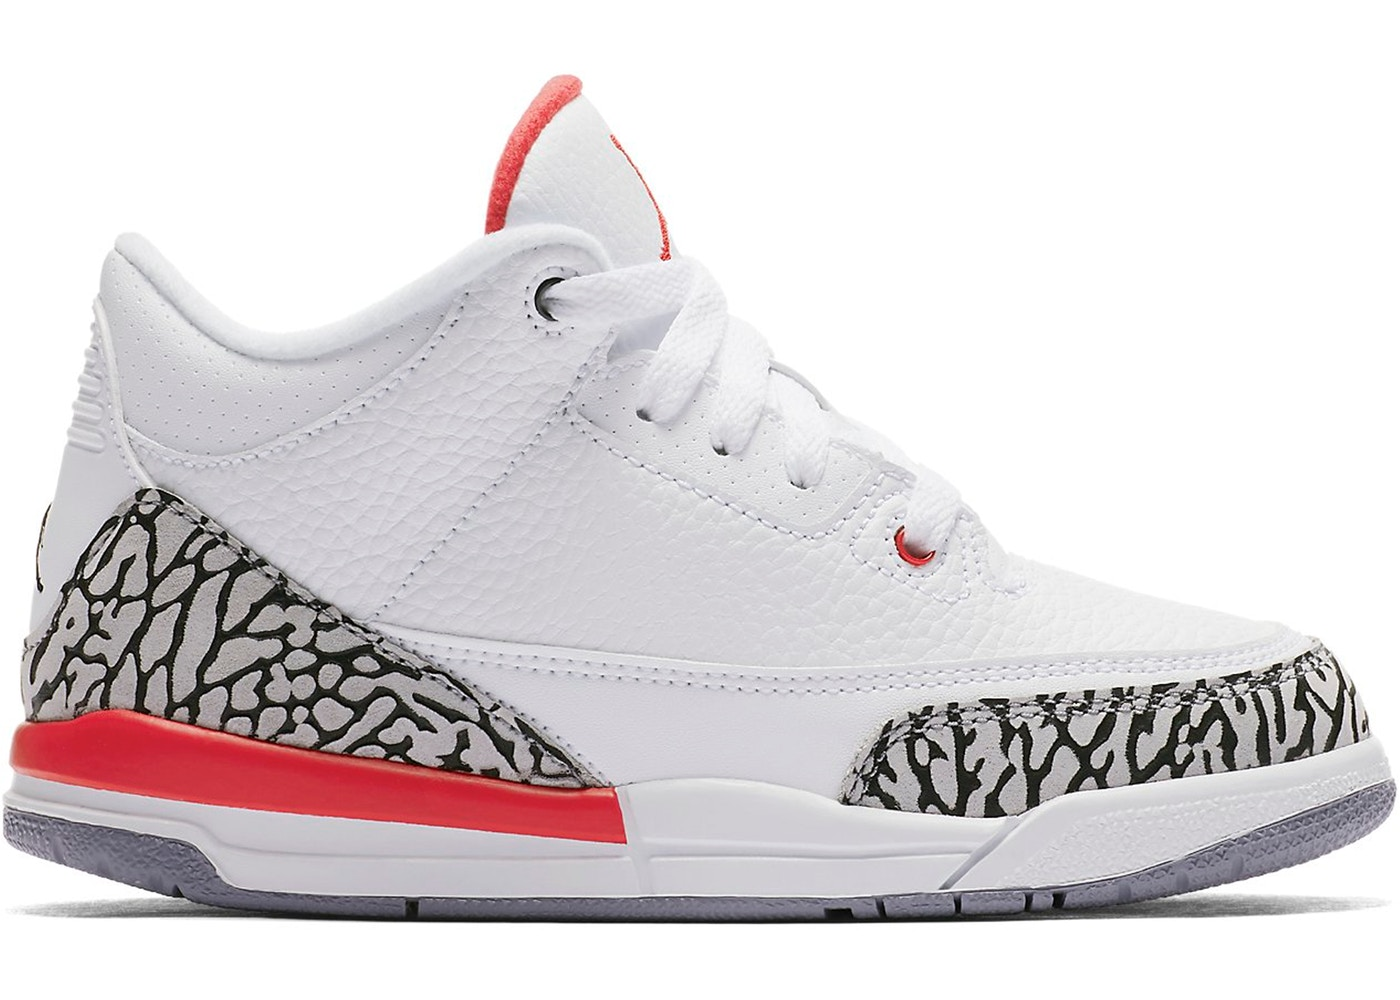 ナイキ ジョーダン JORDAN キッズ 【 3 RETRO HALL OF FAME PS WHITE FIRE REDCEMENT GREYBLACK 】 ベビー マタニティ